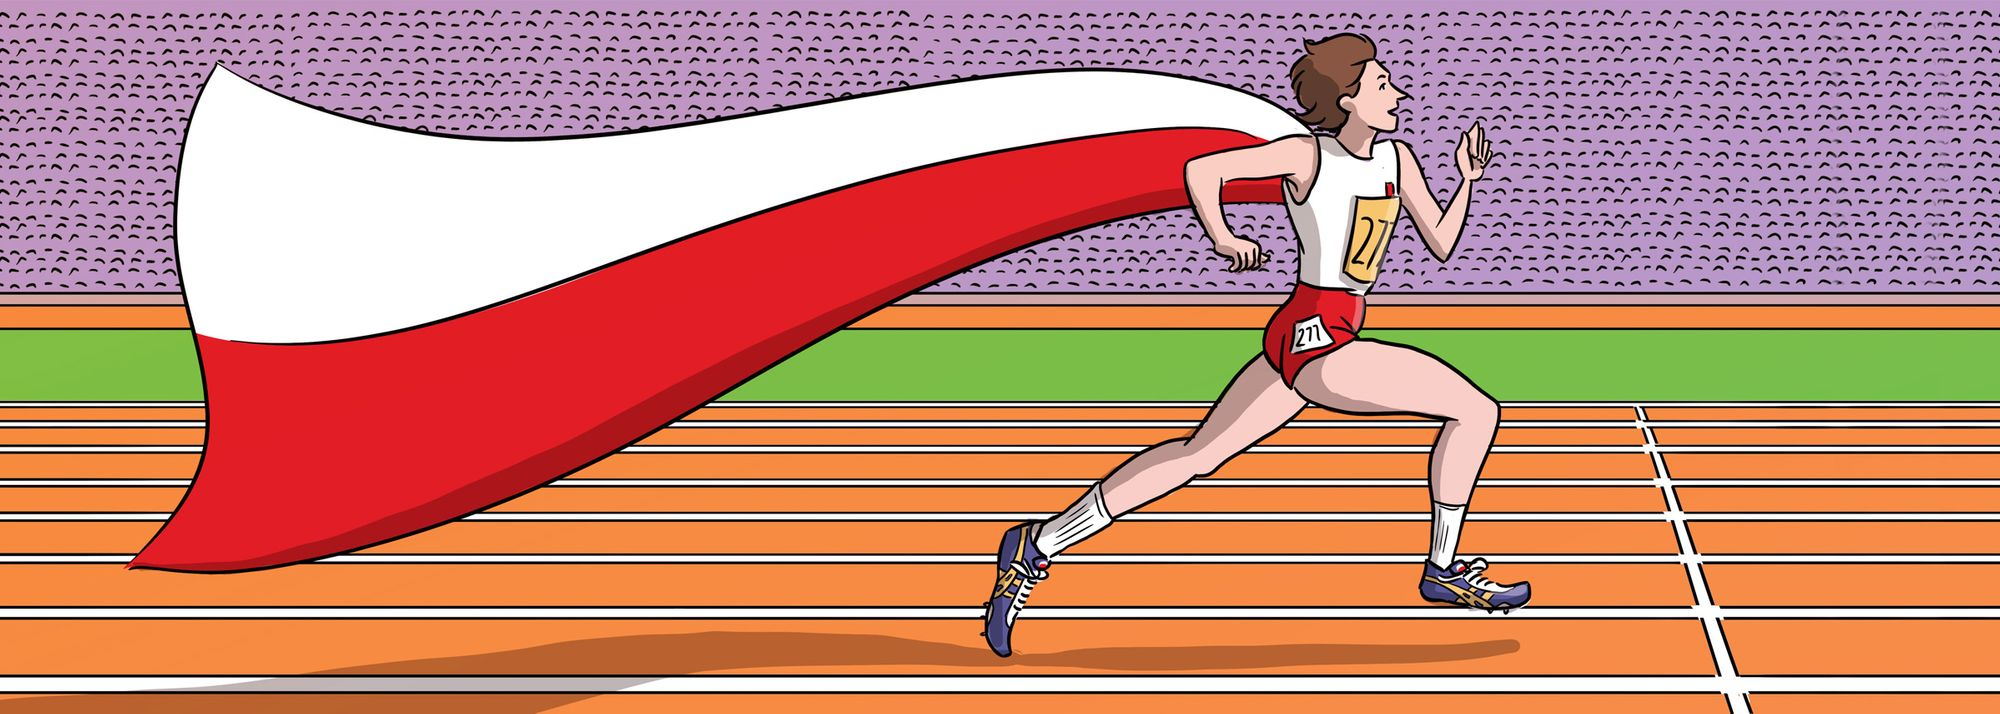 Only one athlete in history has set world records at 100m, 200m and 400m: Irena Szewinska – the brightest star of Polish athletics.